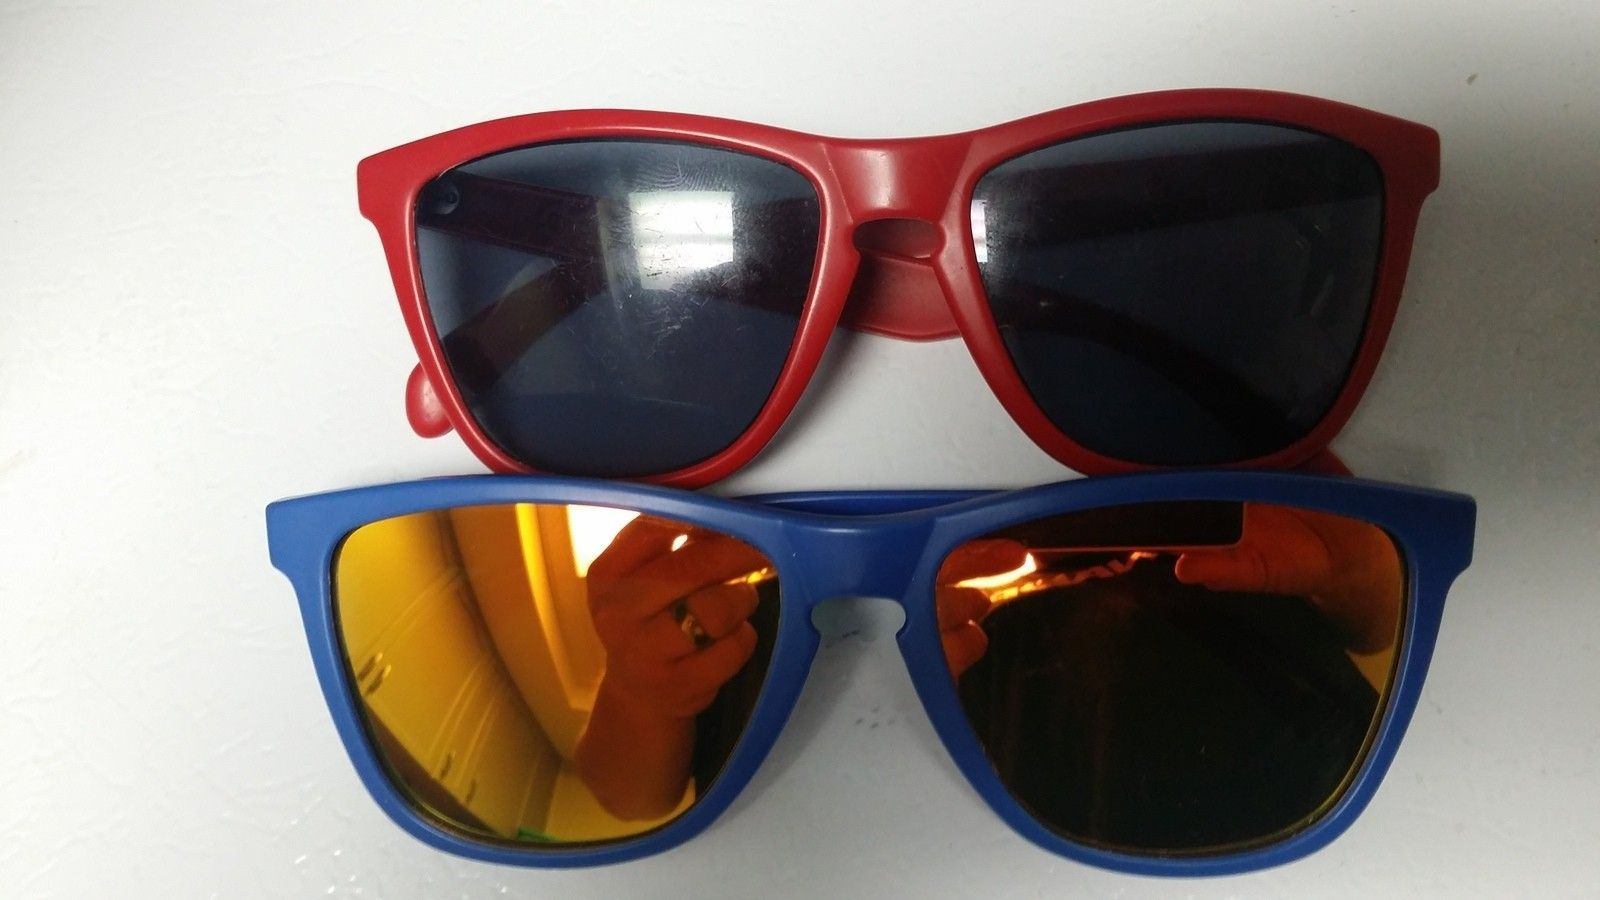 Differences in sizing between 1st generation frogskins. - 1438425966601369649850.jpg